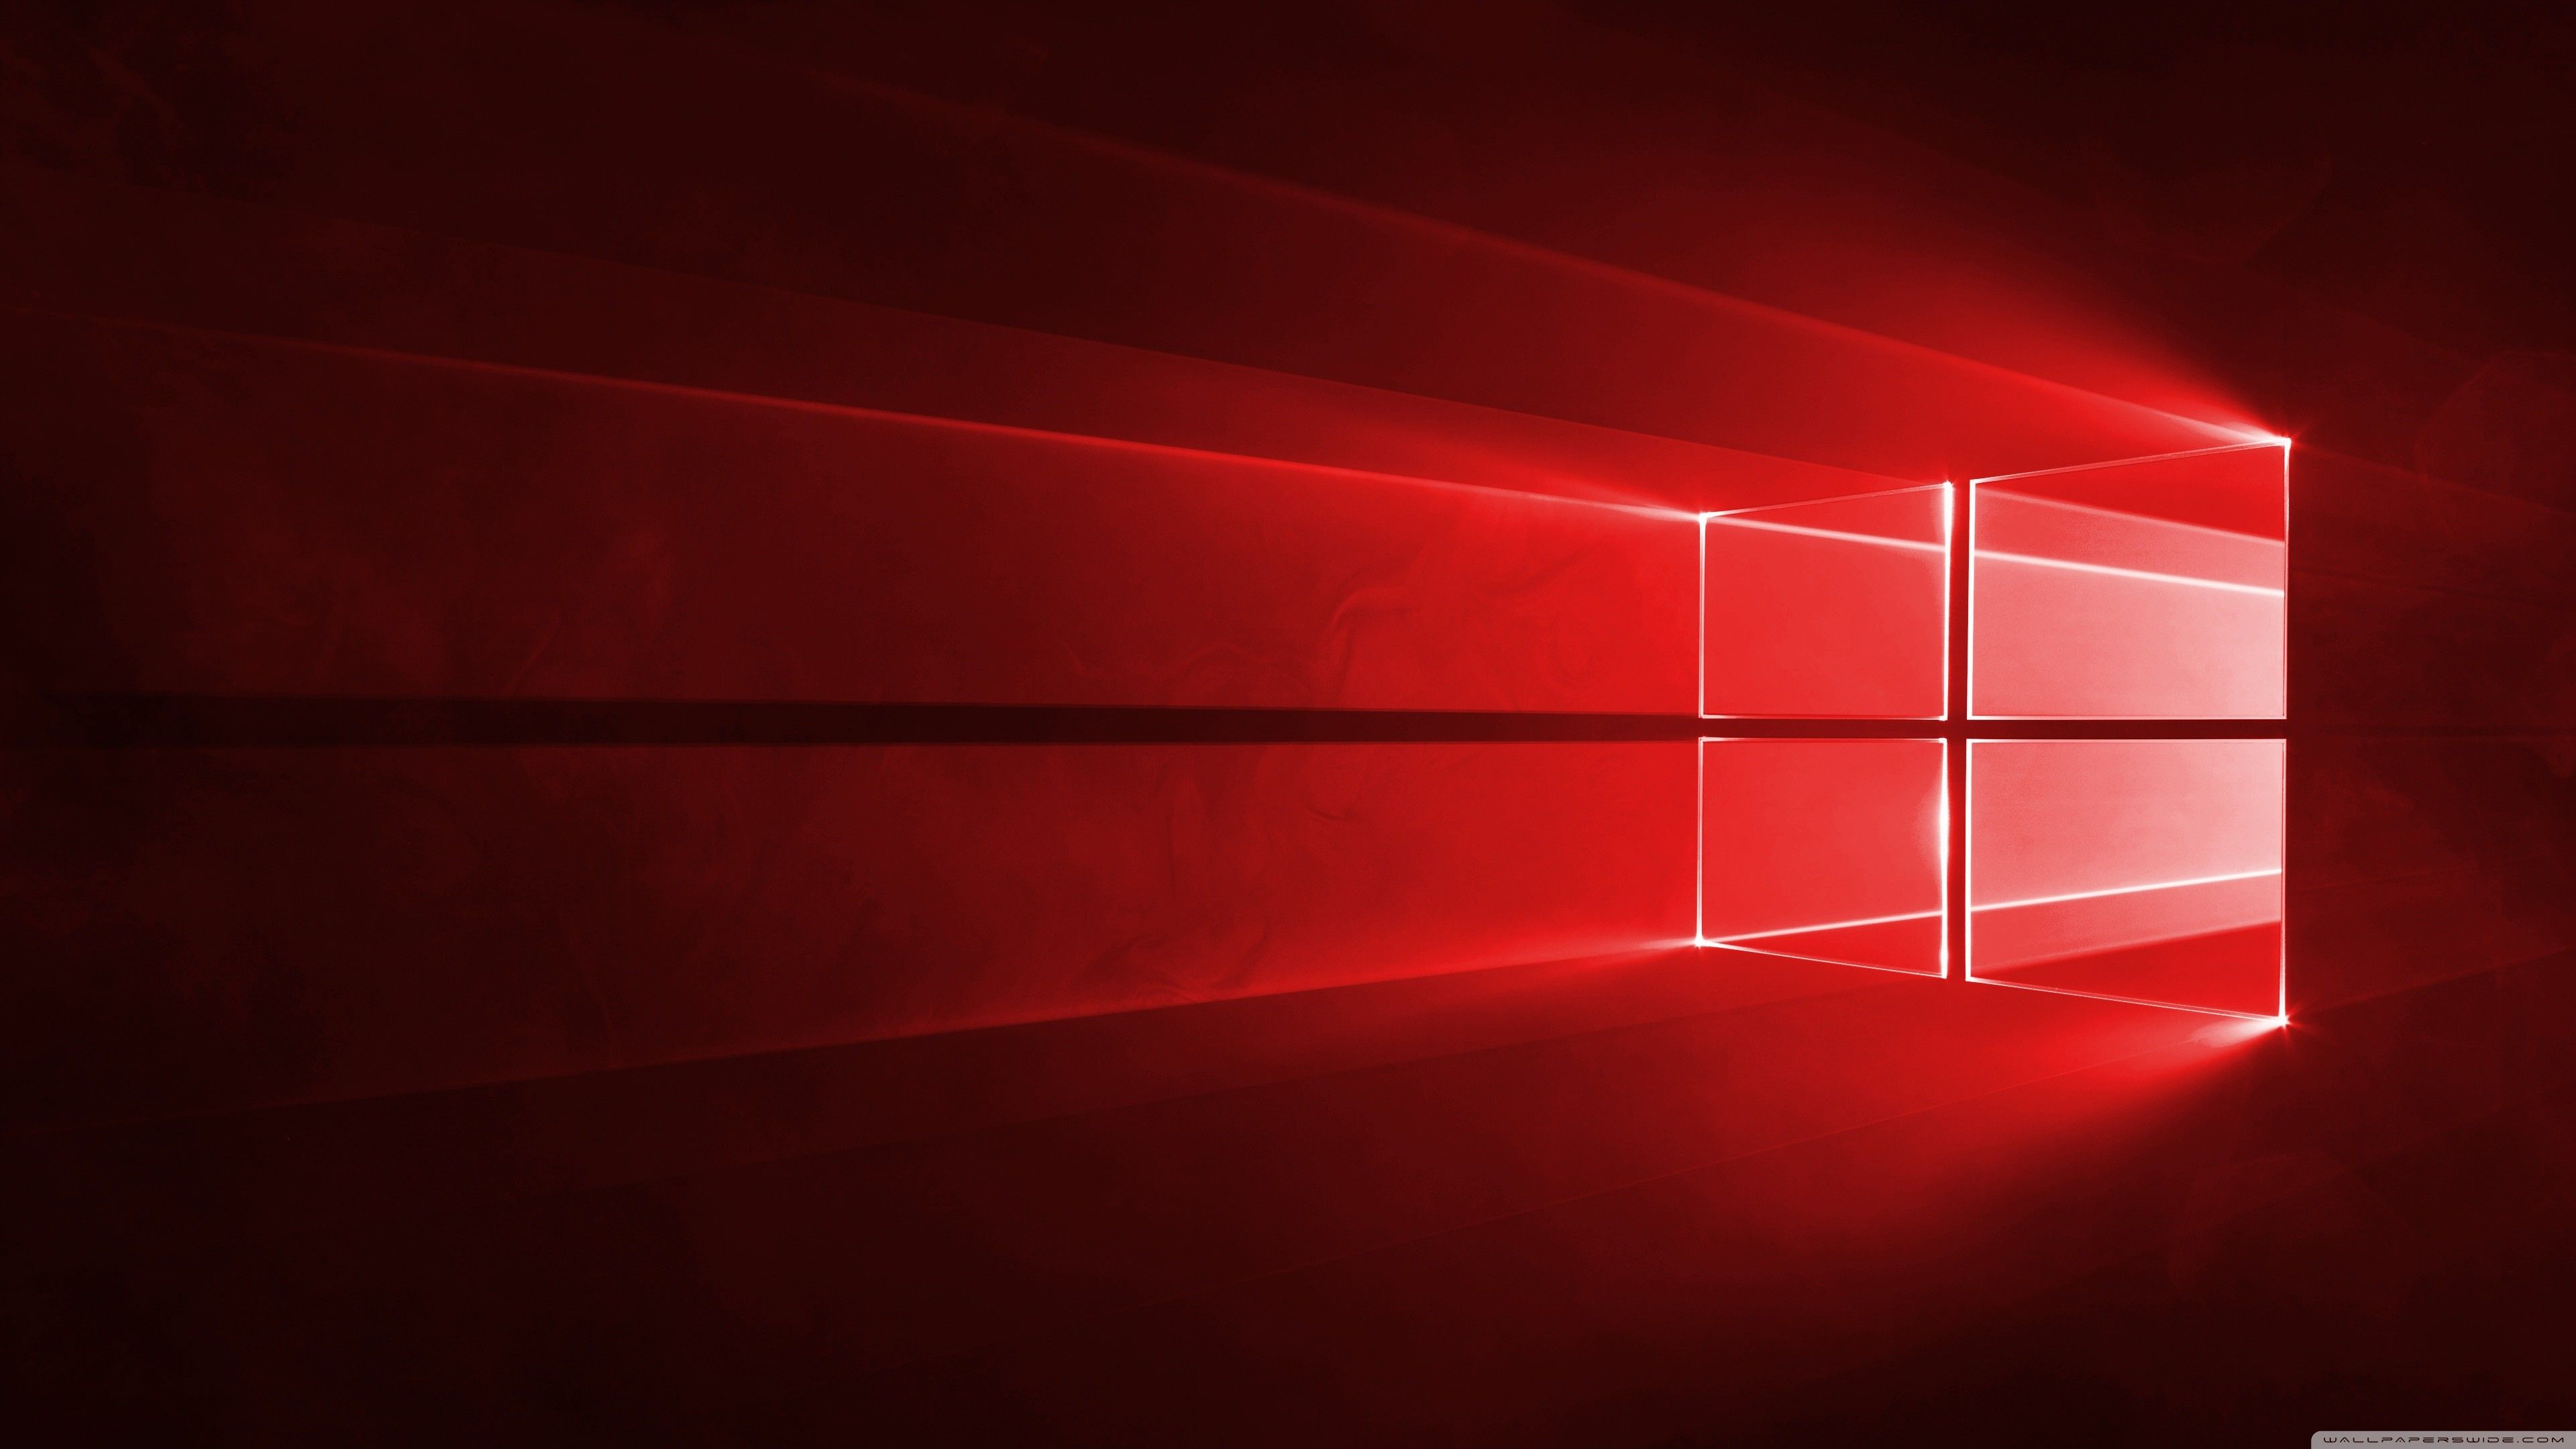 Windows 10 Latest Wallpaper In 2020 Wallpaper Windows 10 Windows Wallpaper Background Hd Wallpaper